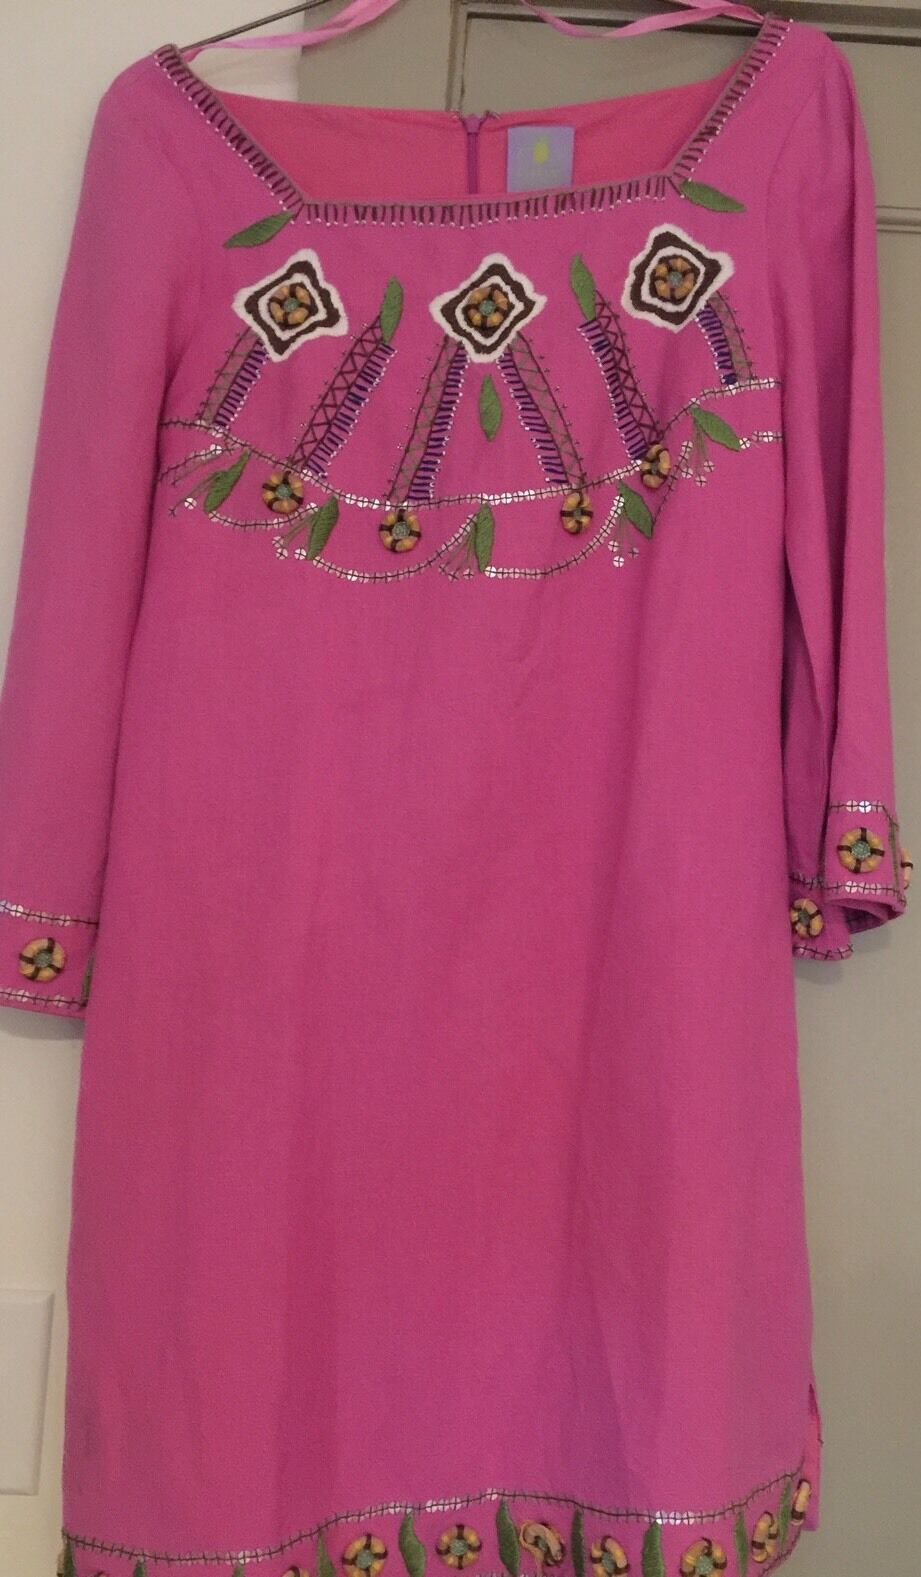 CJ LAING DRESS Pink Linen Blend Top Cover Up Size M Retail  465 Embroidery